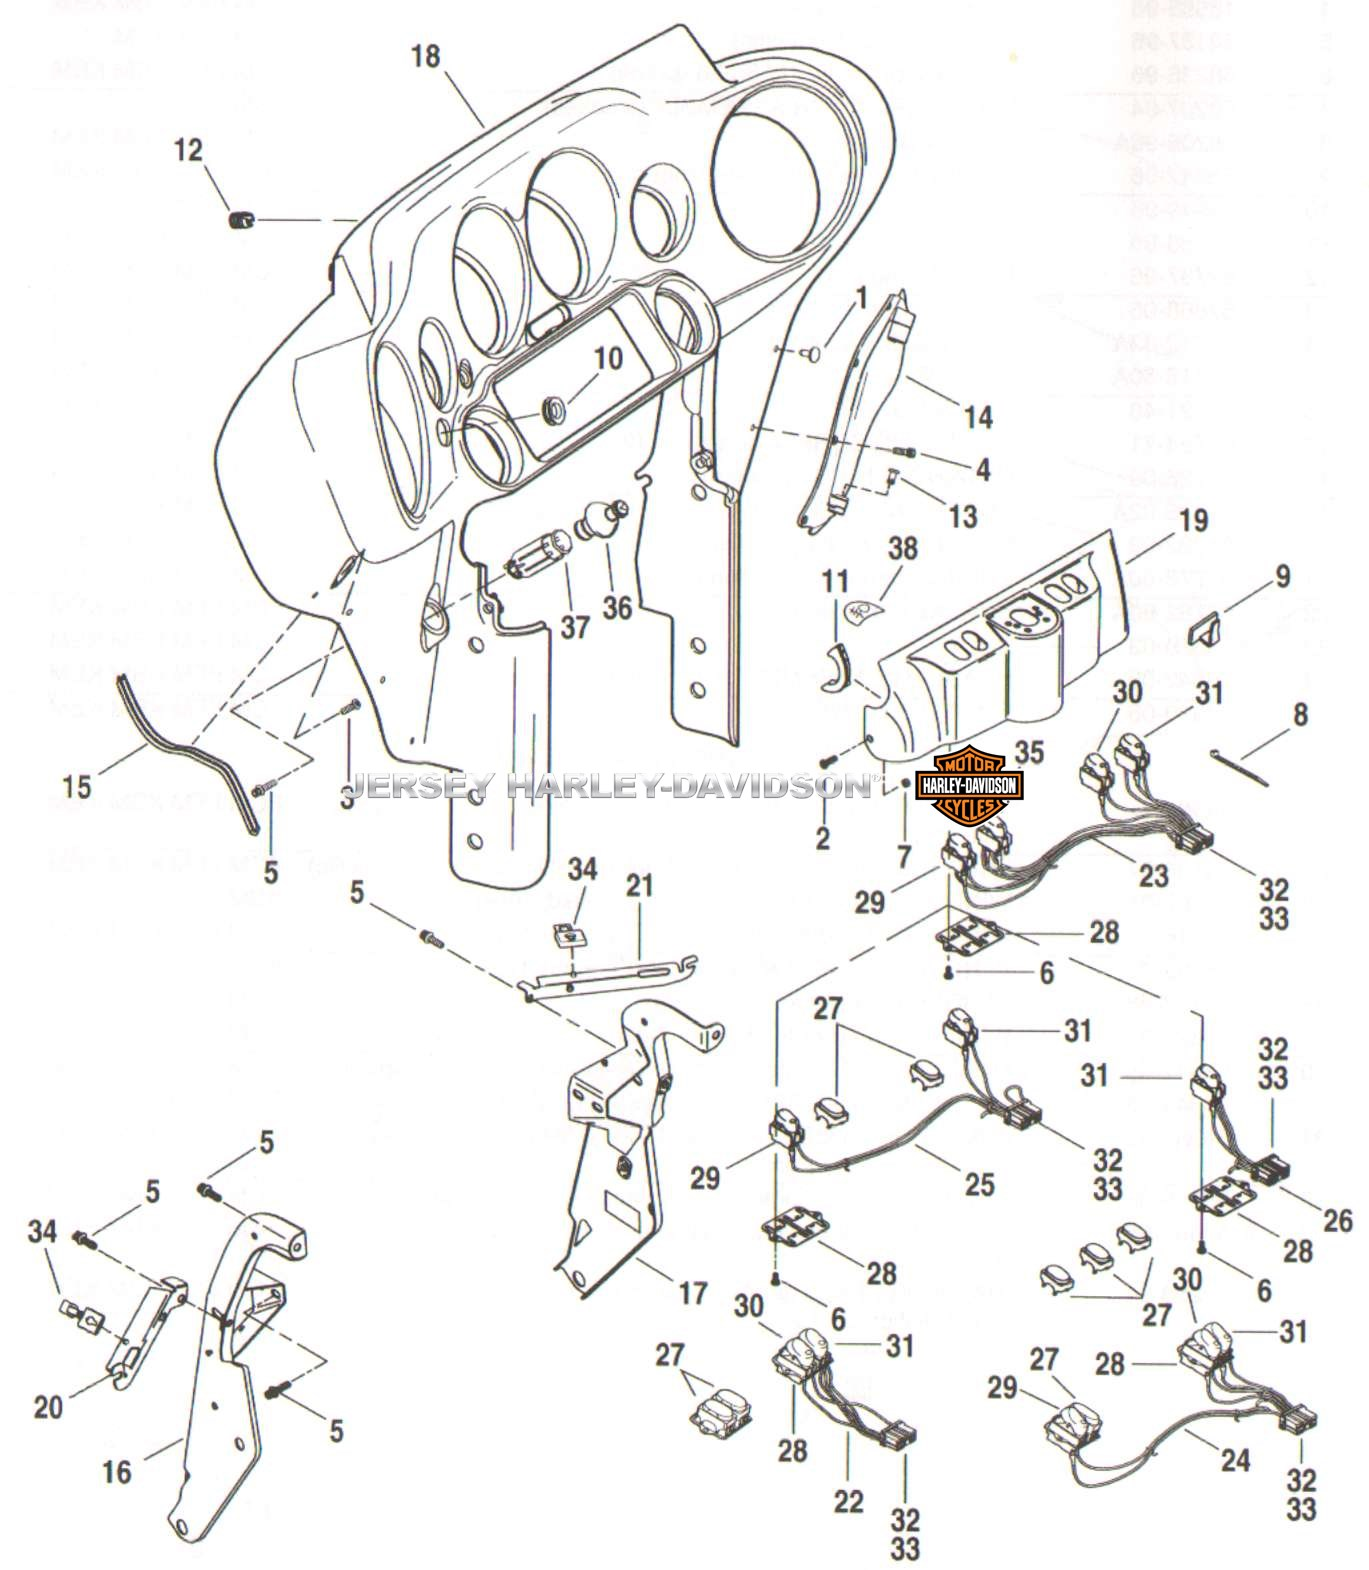 2011 harley road king wiring diagram for dummies